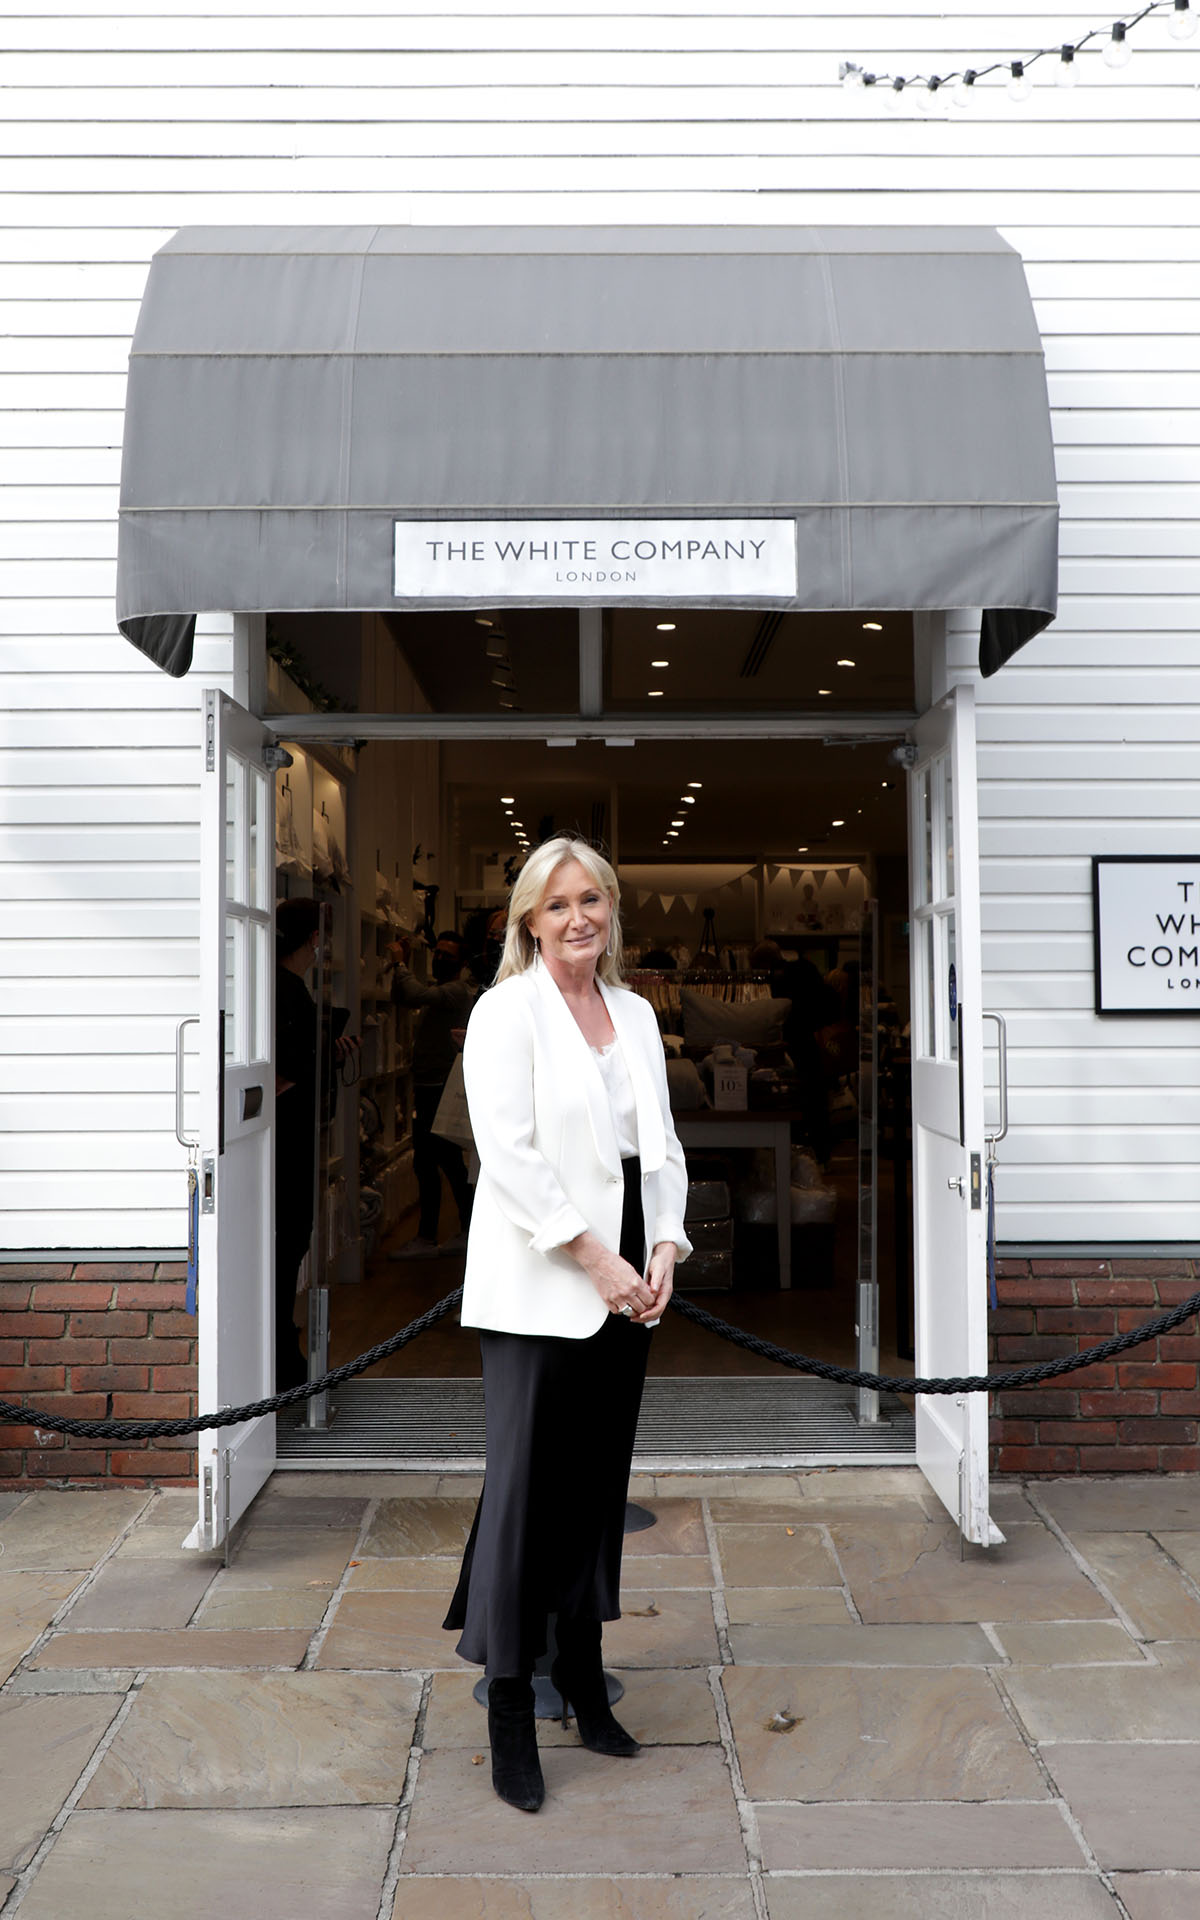 Chrissie Rucker, The White Company, at Bicester Village